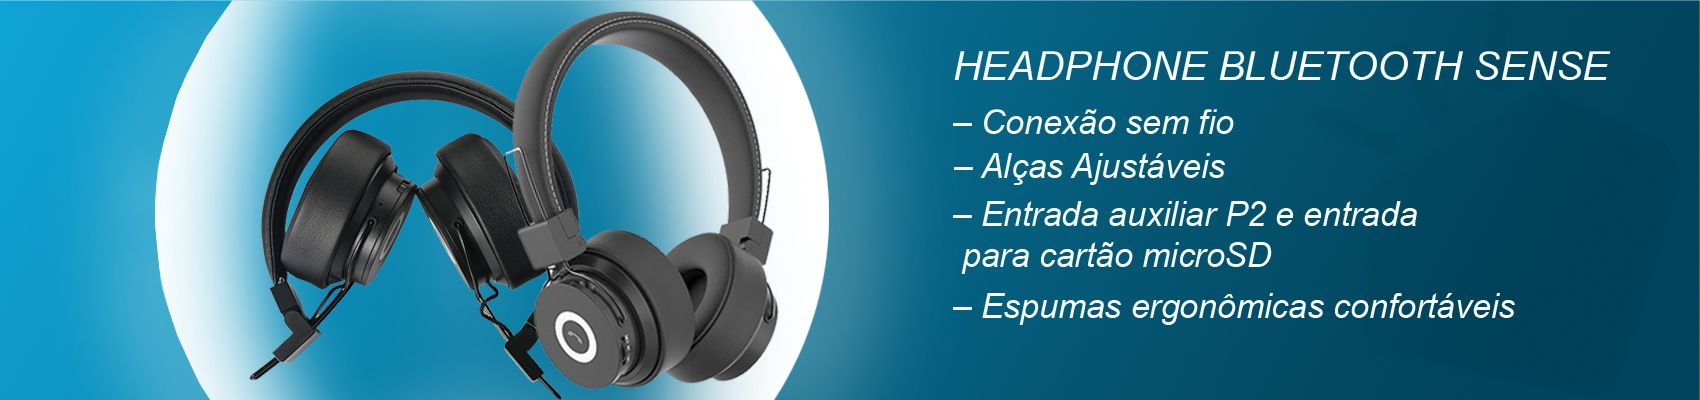 HEADPHONE BLUETOOTH SENSE